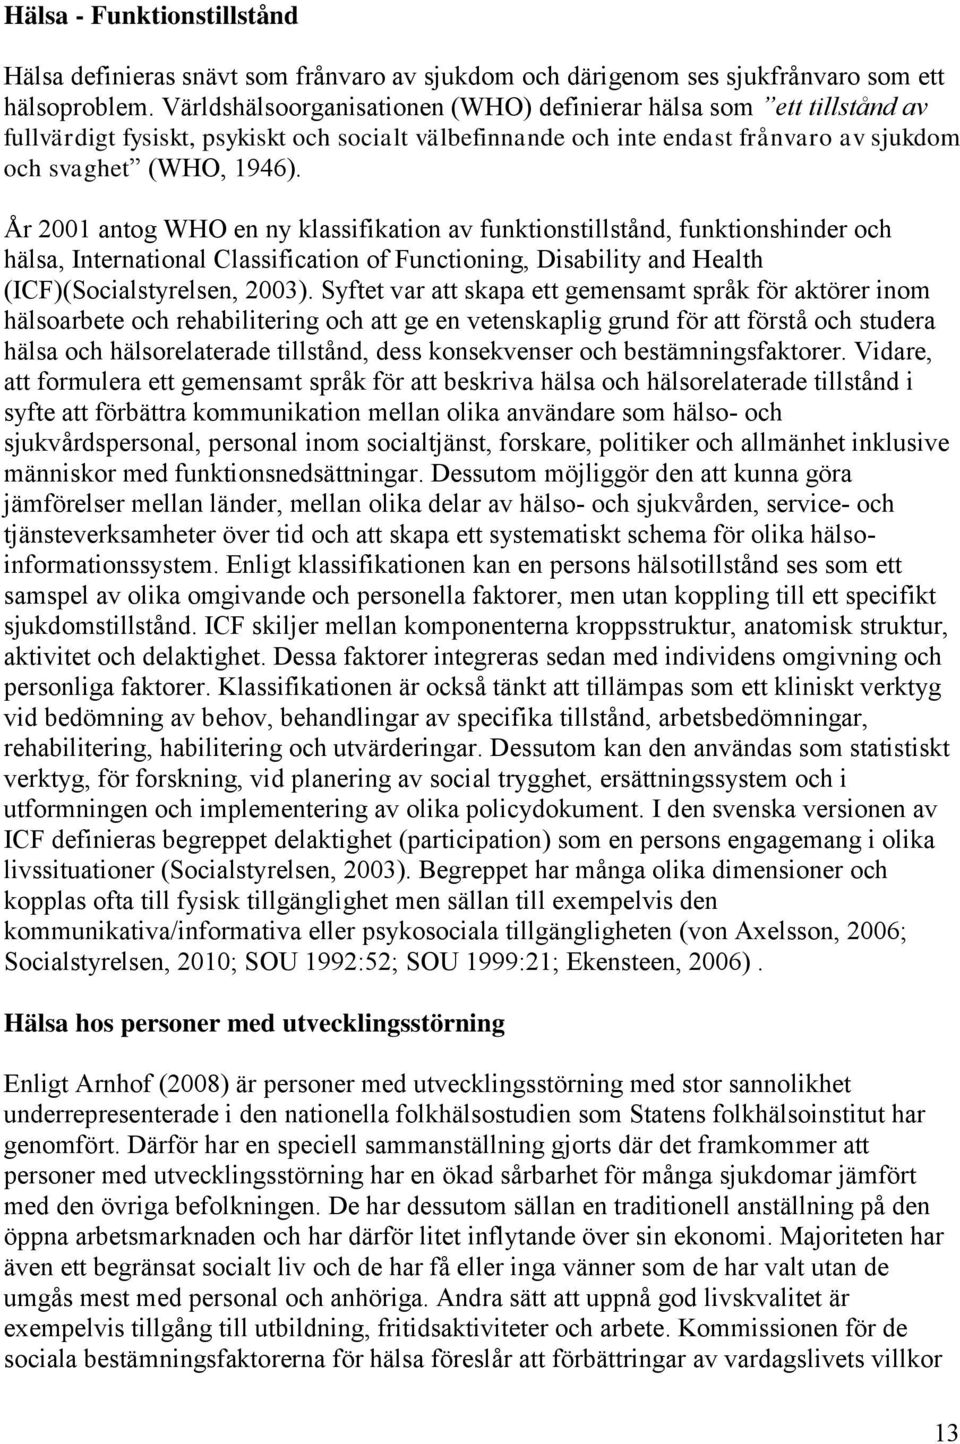 År 2001 antog WHO en ny klassifikation av funktionstillstånd, funktionshinder och hälsa, International Classification of Functioning, Disability and Health (ICF)(Socialstyrelsen, 2003).